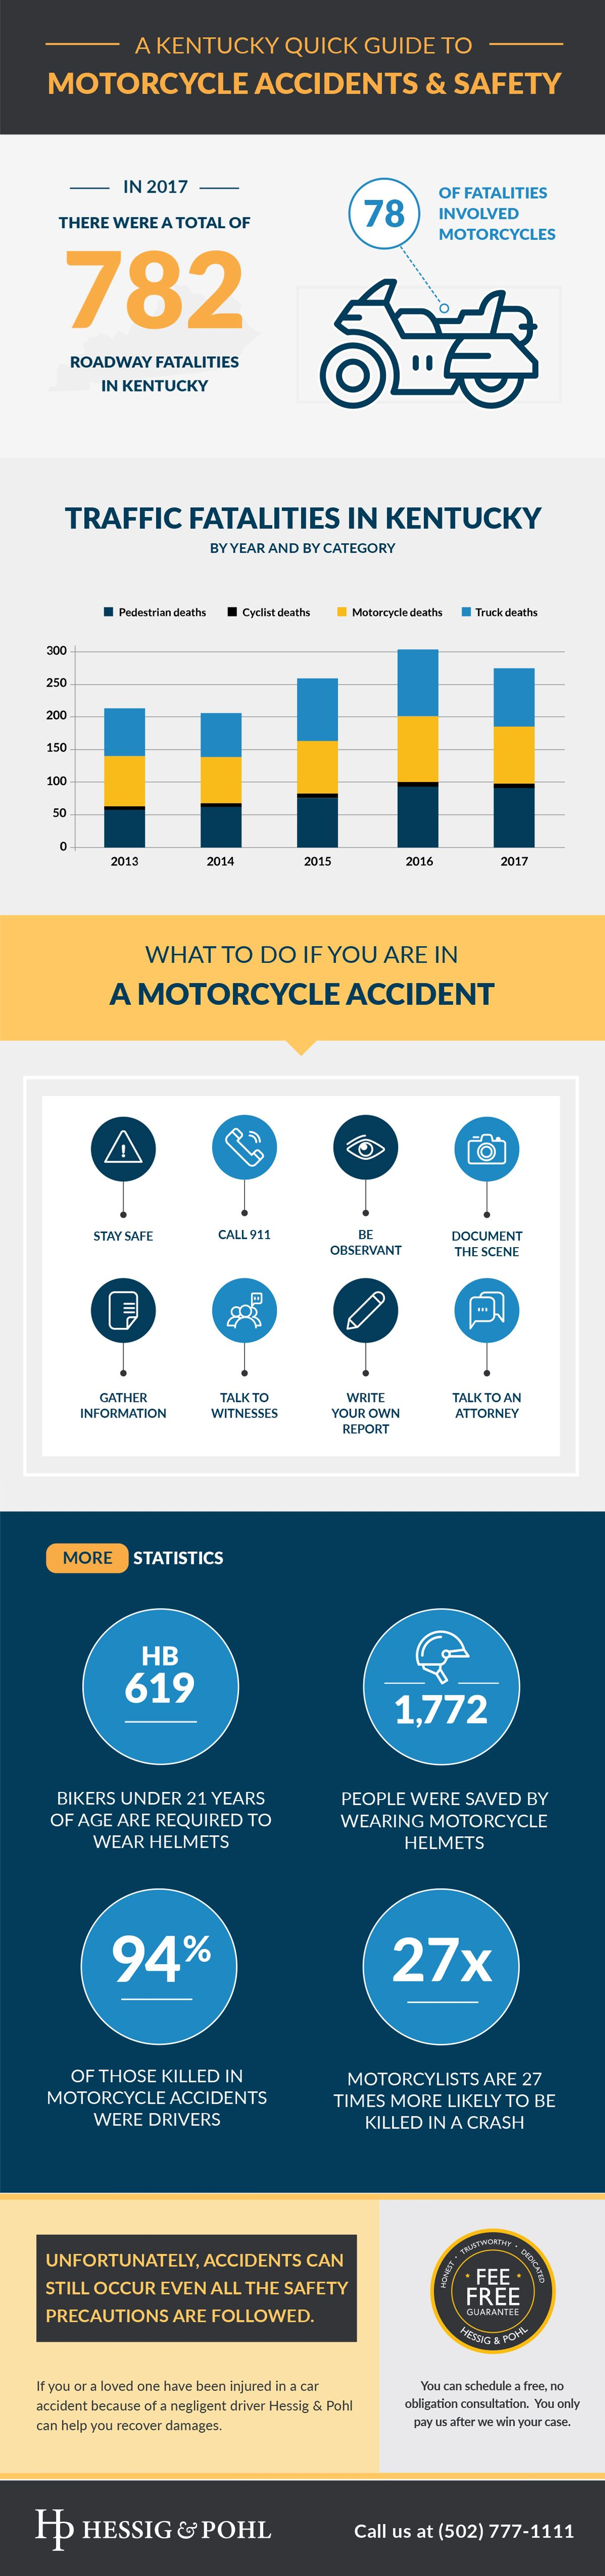 Louisville Motorcycle Accident Infographic